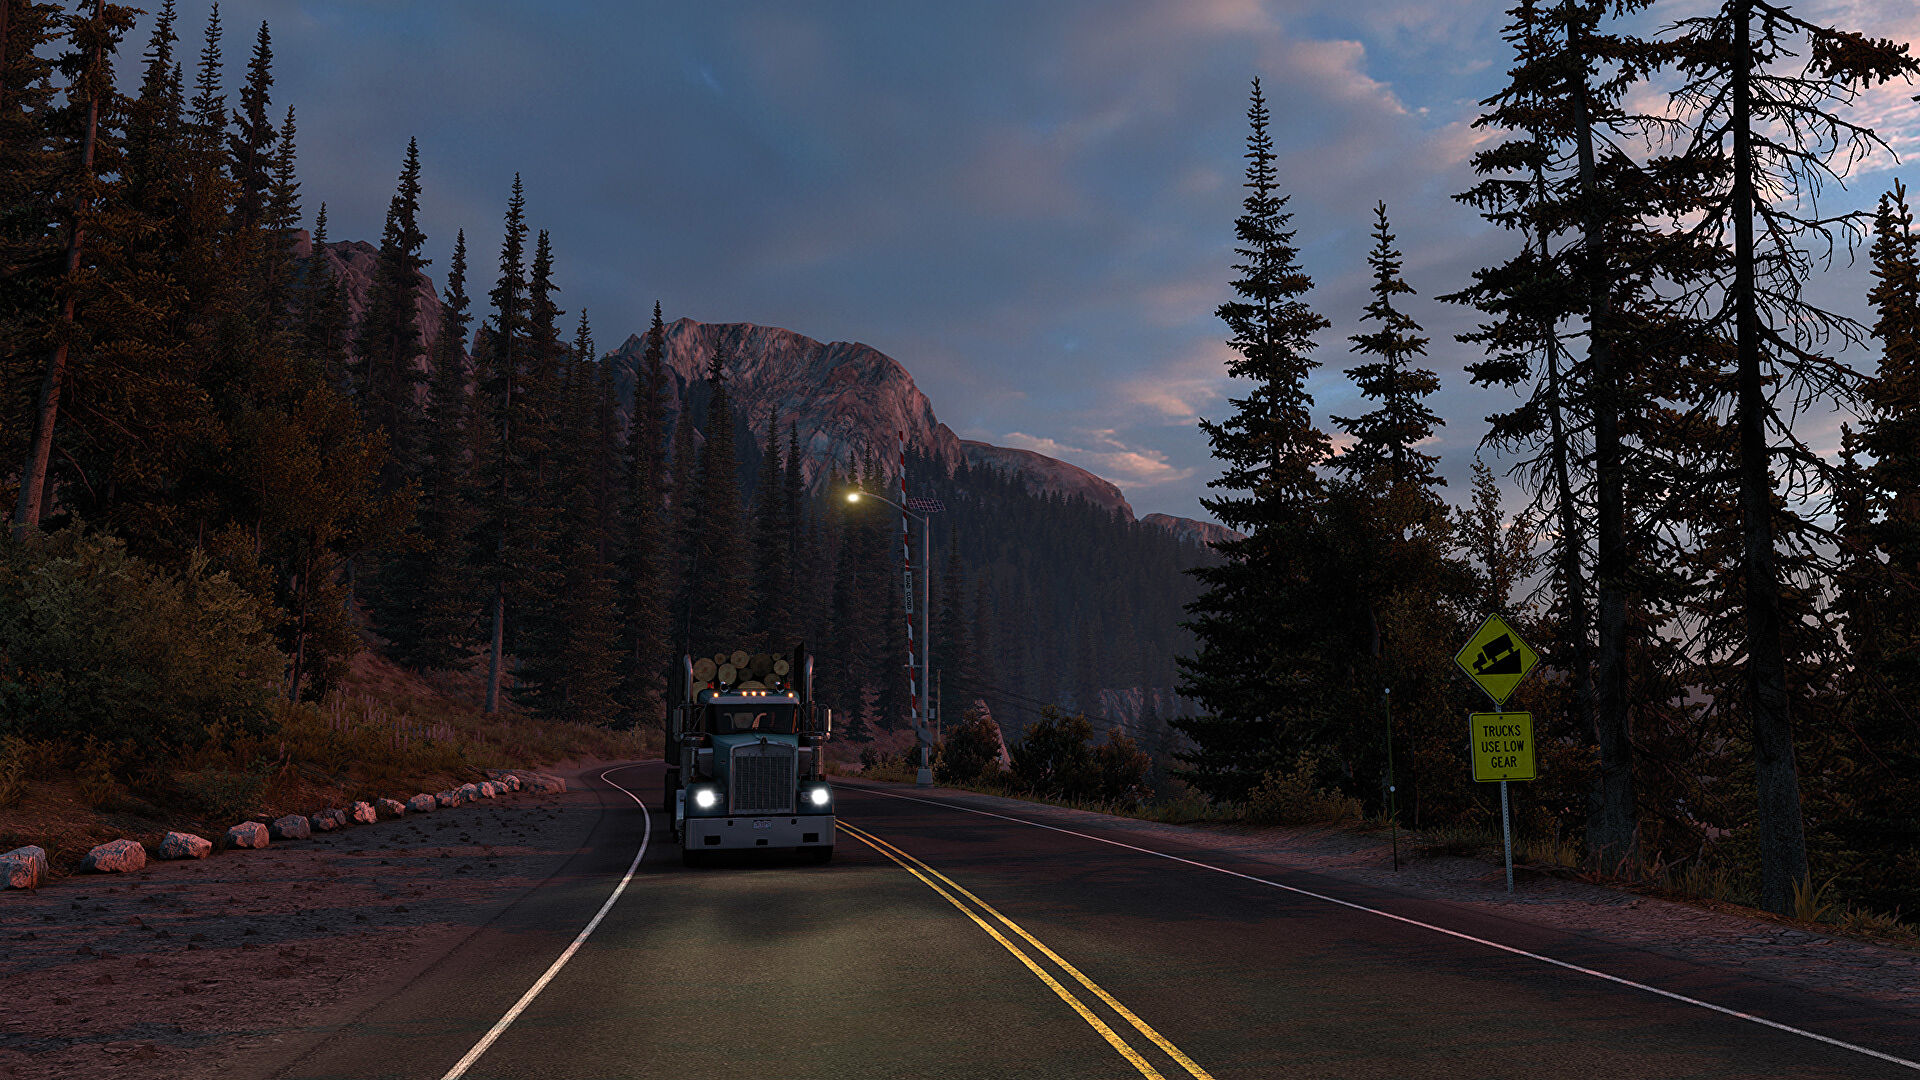 American Truck Simulator's new lighting system looks lovely